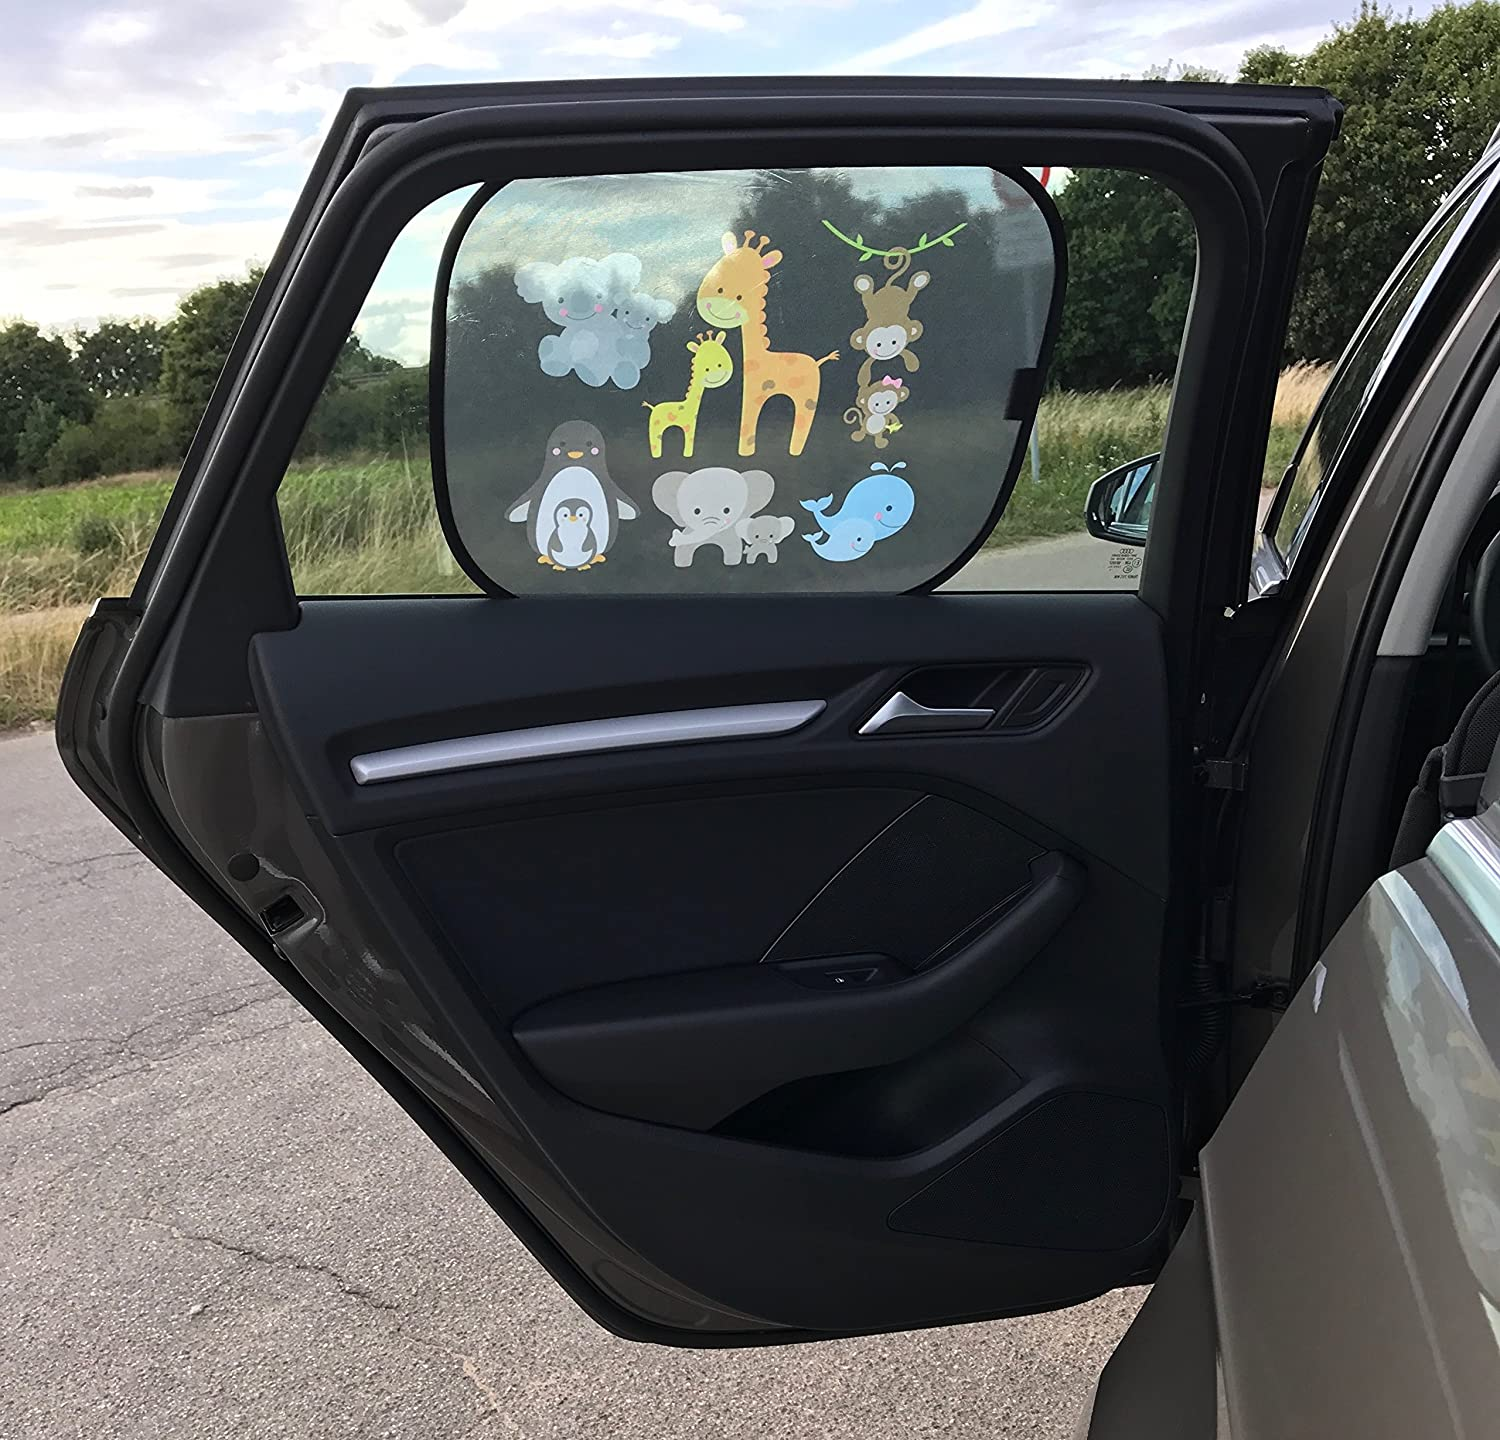 ohne Saugn/äpfe Selbsthaftende Auto Sonnenblende Autofenster Sonnenschutz Autosonnenblende inkl UV Schutz HECKBO/® 44x36cm - Autosonnenschutz Kinder Tasche | Motiv: Baby Tiere Mama 2 St/ück